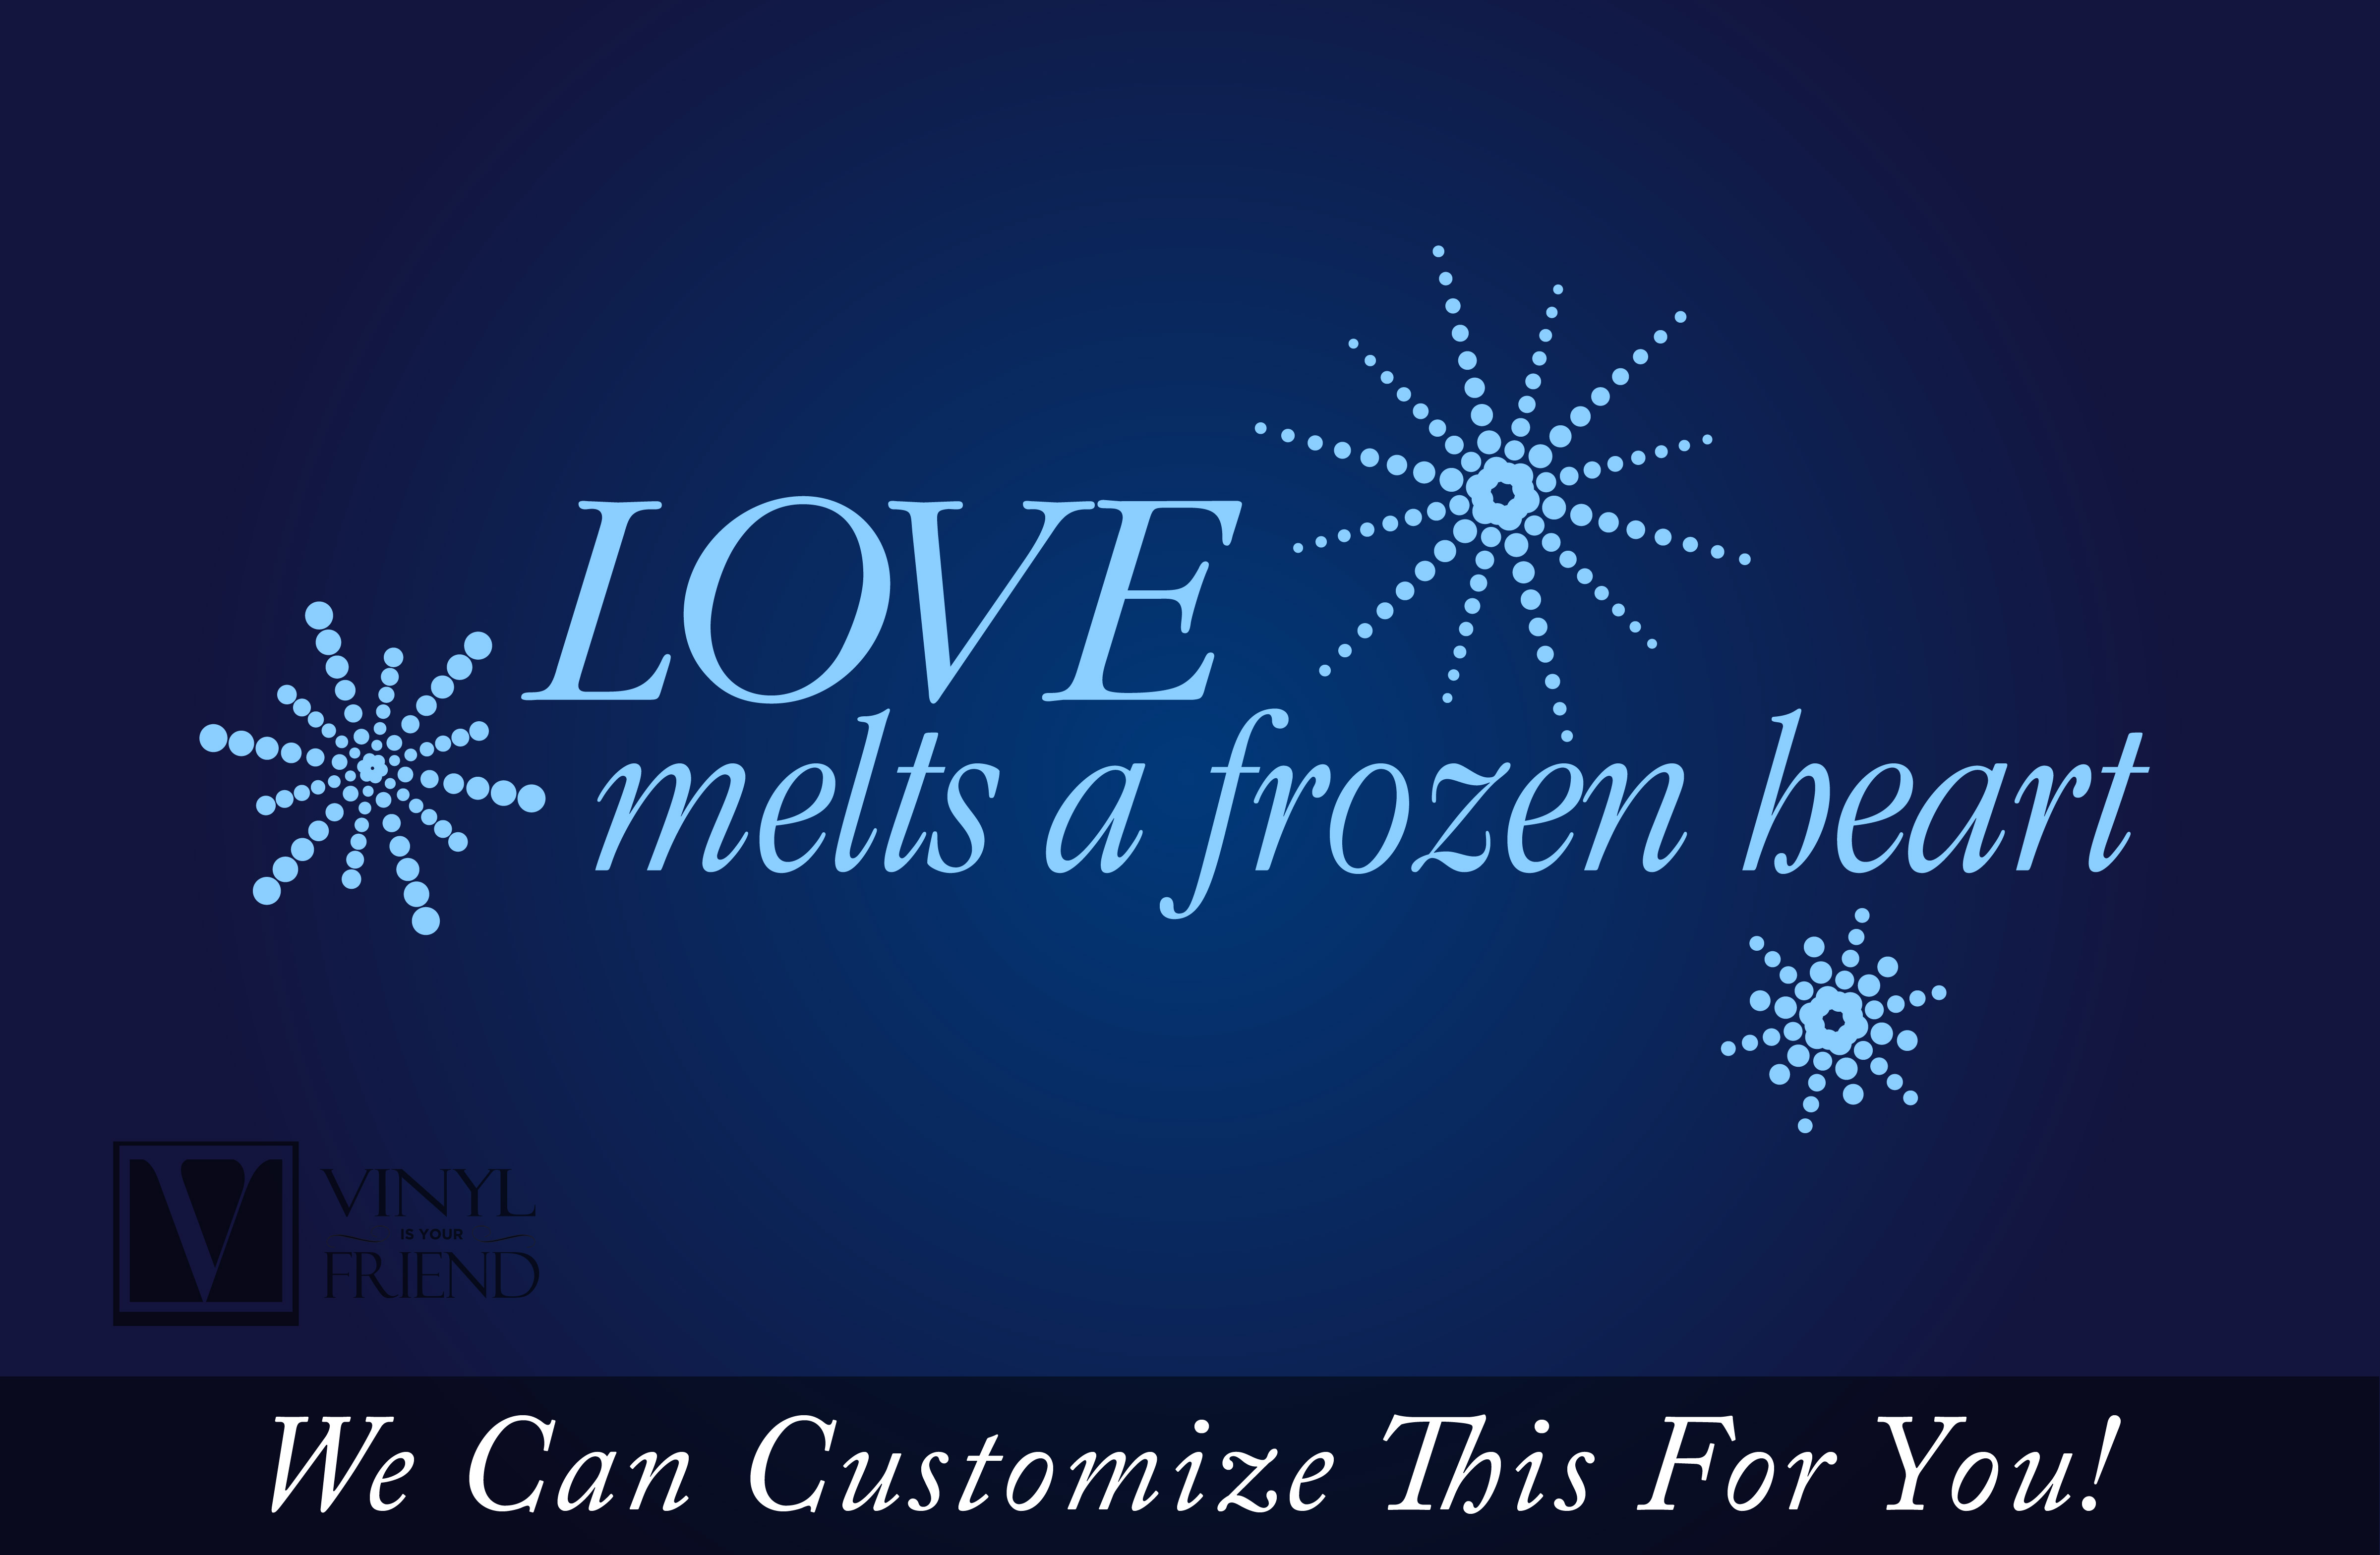 Snowflake Love Quotes Love Melts A Frozen Heart From Frozen With Snowflakes  A Wall